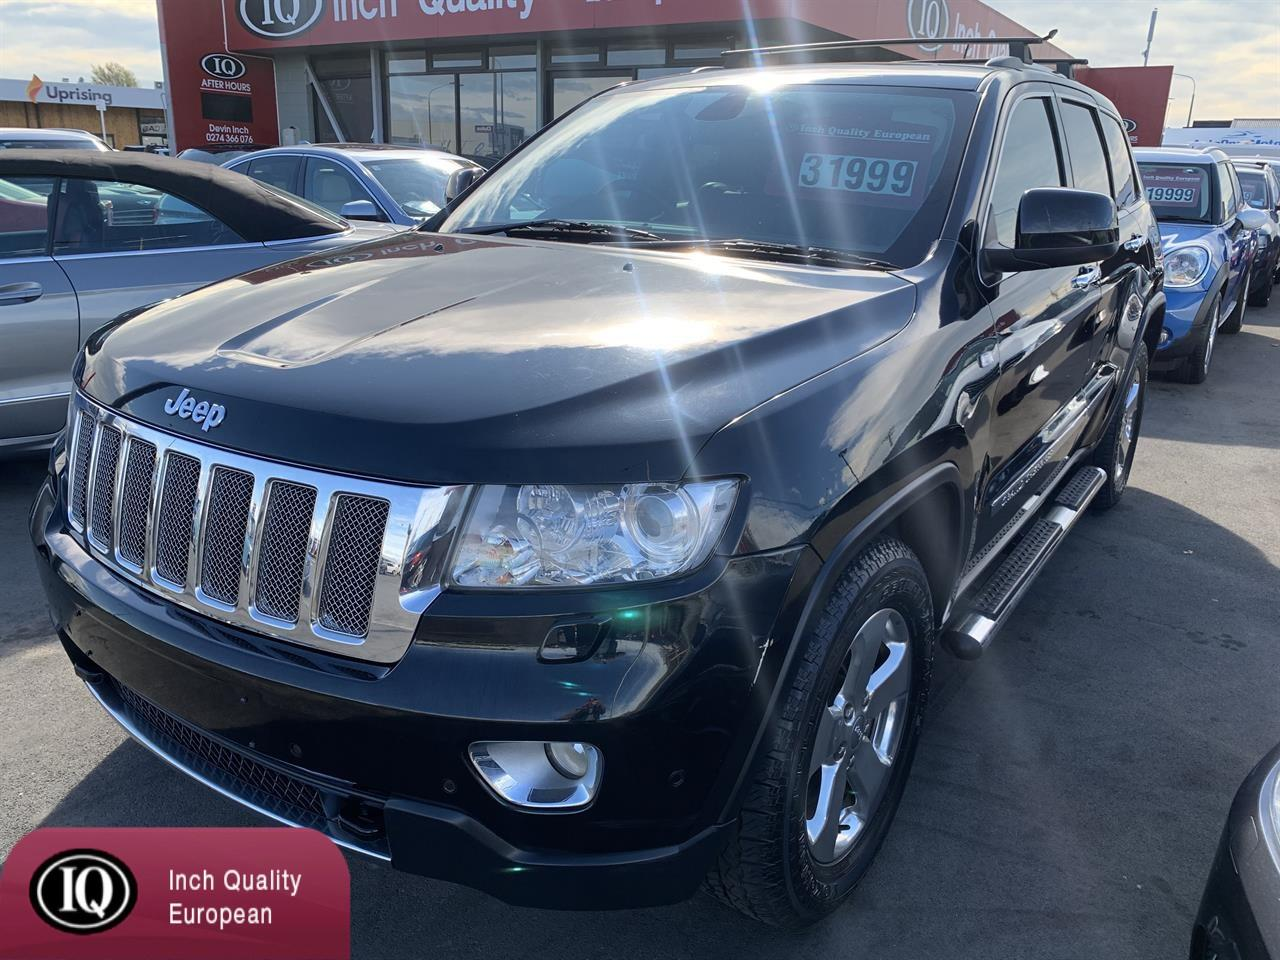 image-2, 2011 Jeep Grand Cherokee Ltd One owner & Highest s at Christchurch